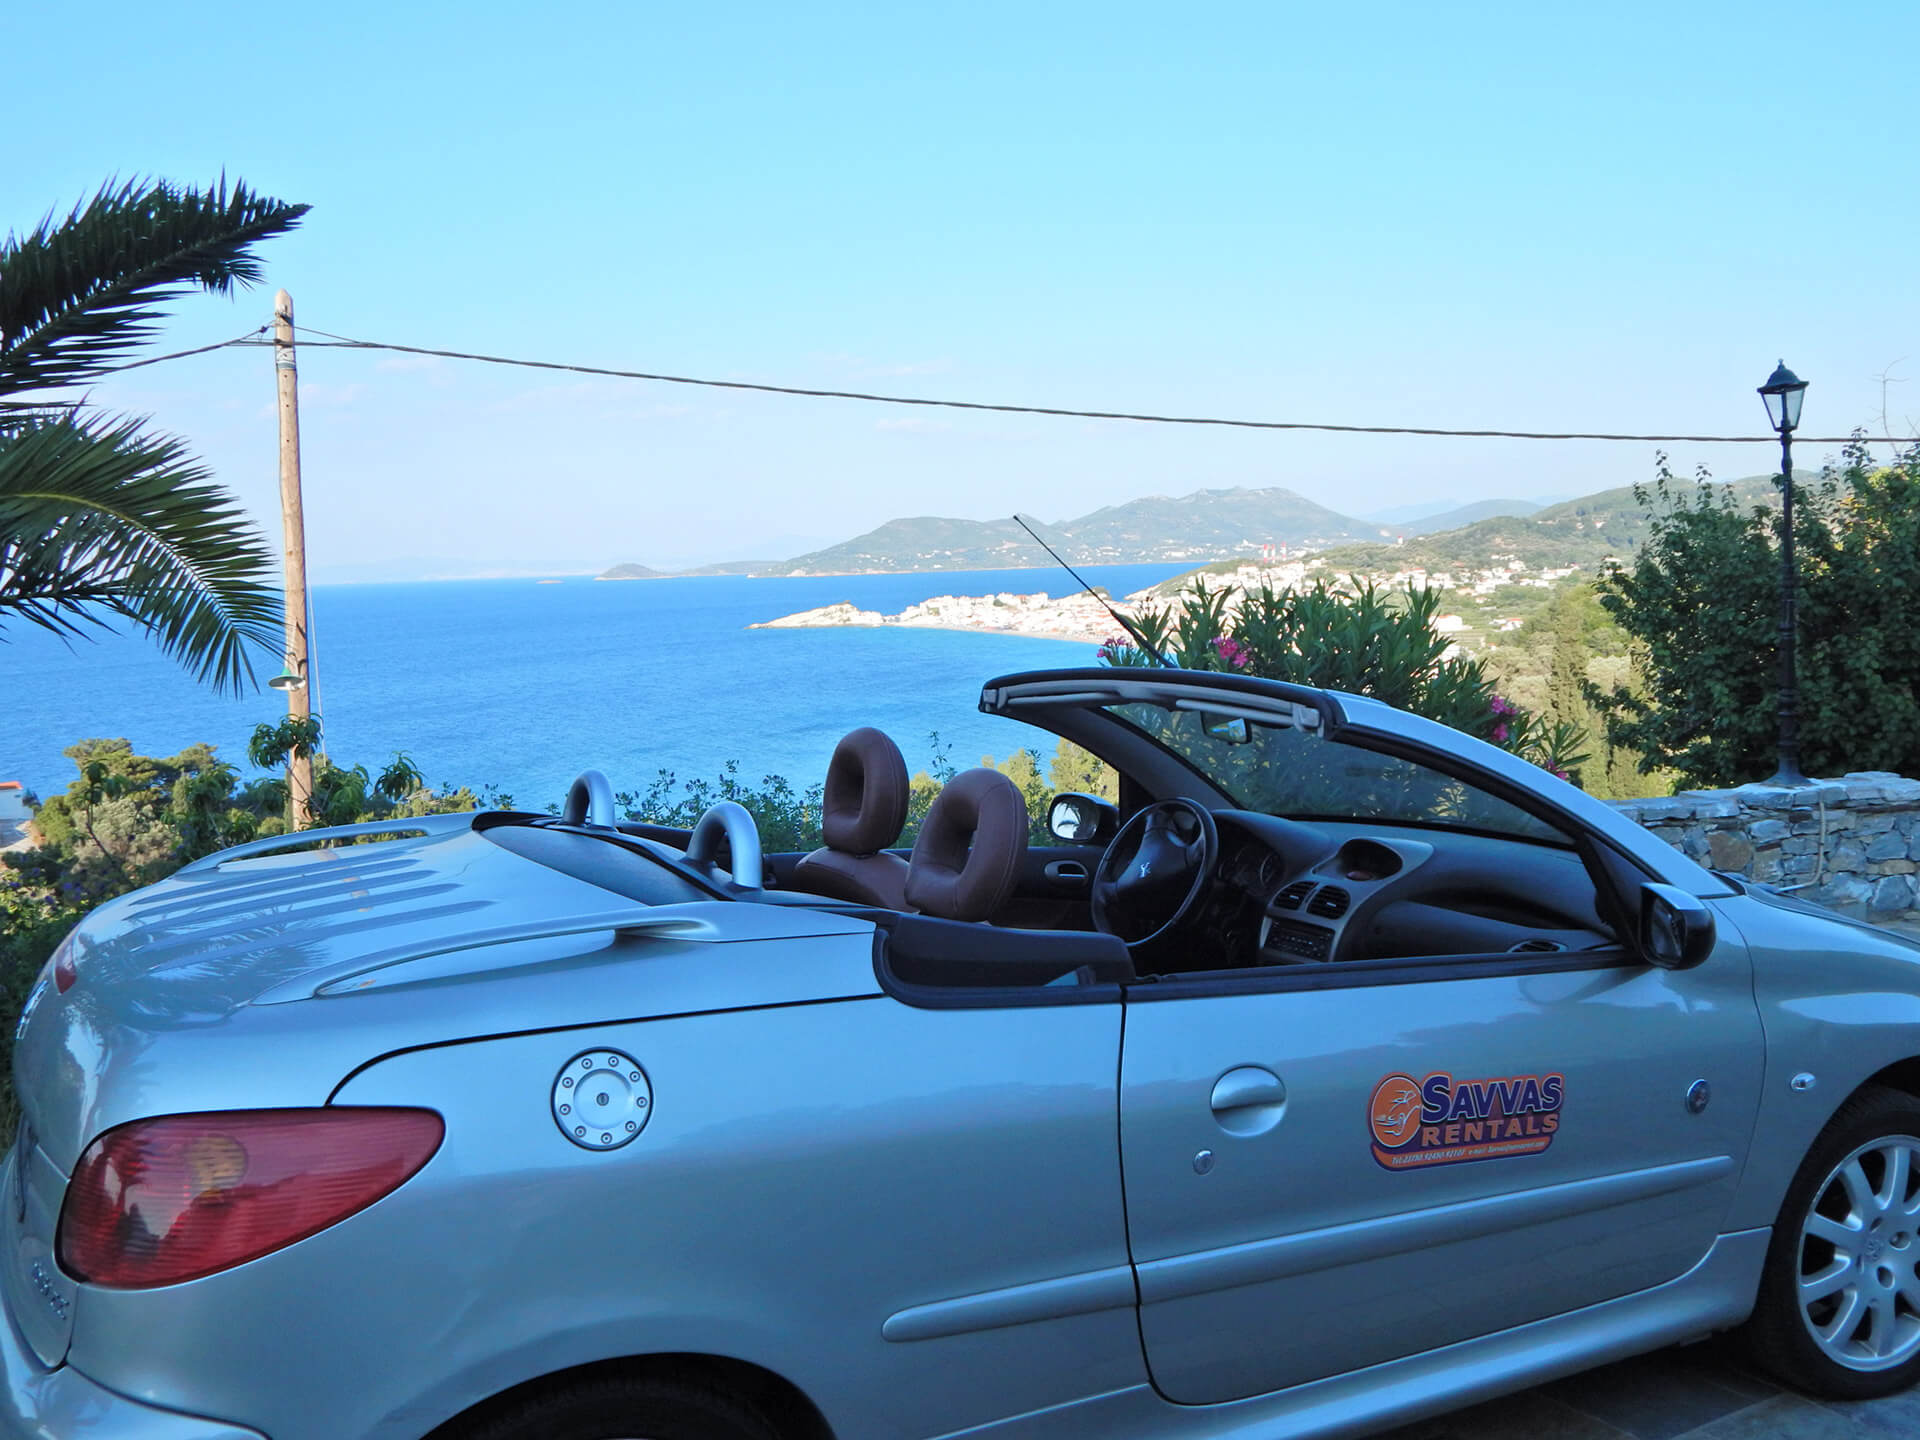 Peugeot 206 Cabrio - Savvas Rent a Car